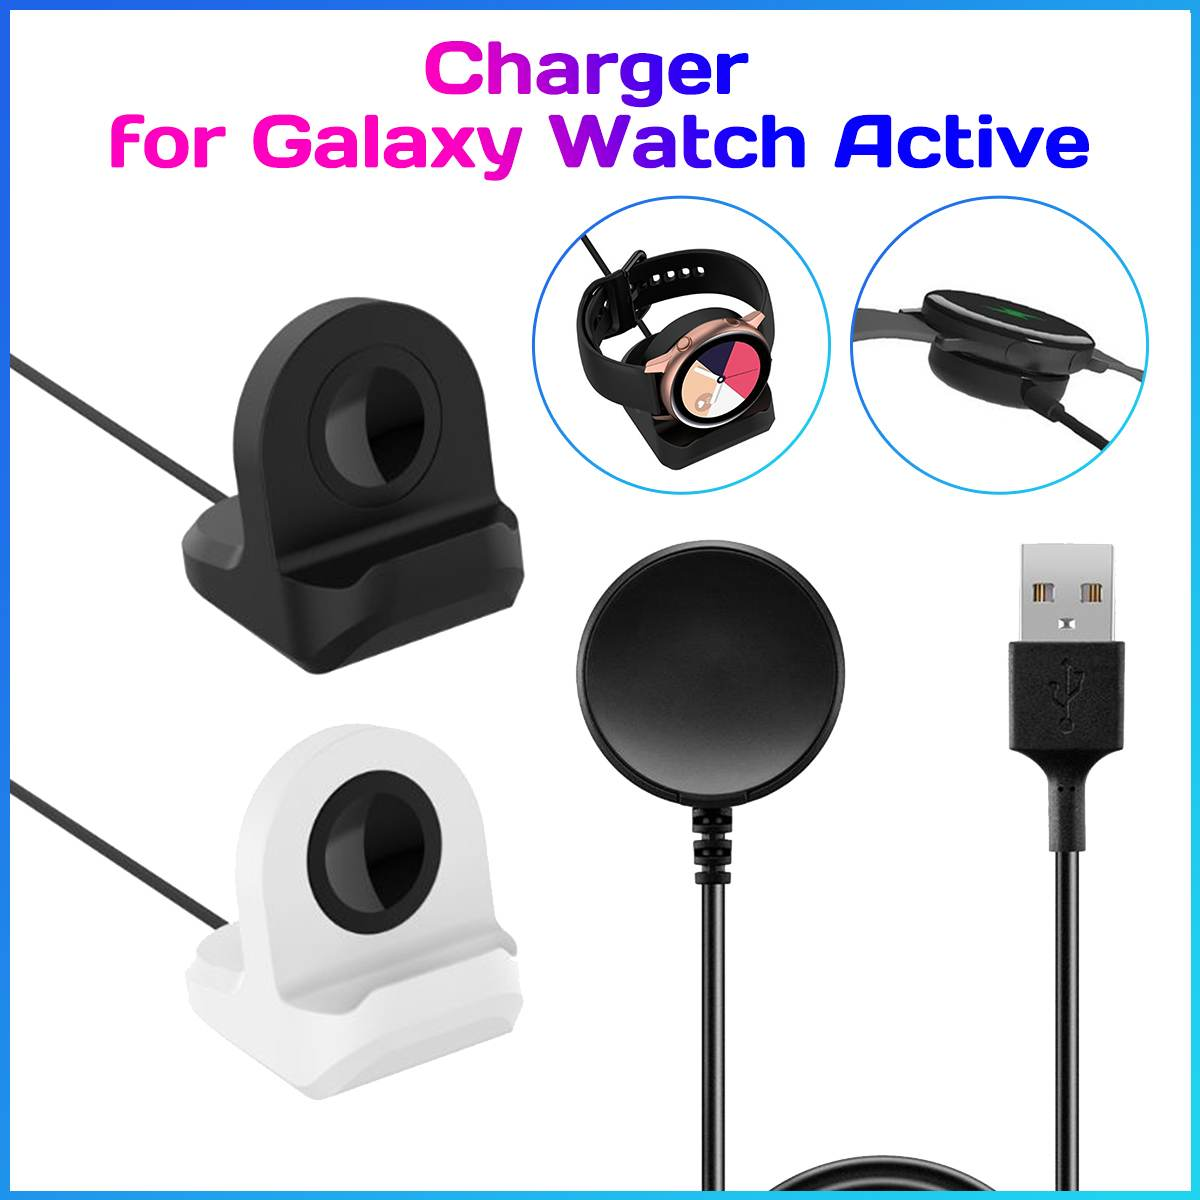 Dock-Stand Smartwatch Charger Samsungg Galaxyy SM-R500 Silicone for Active Cable/Holder